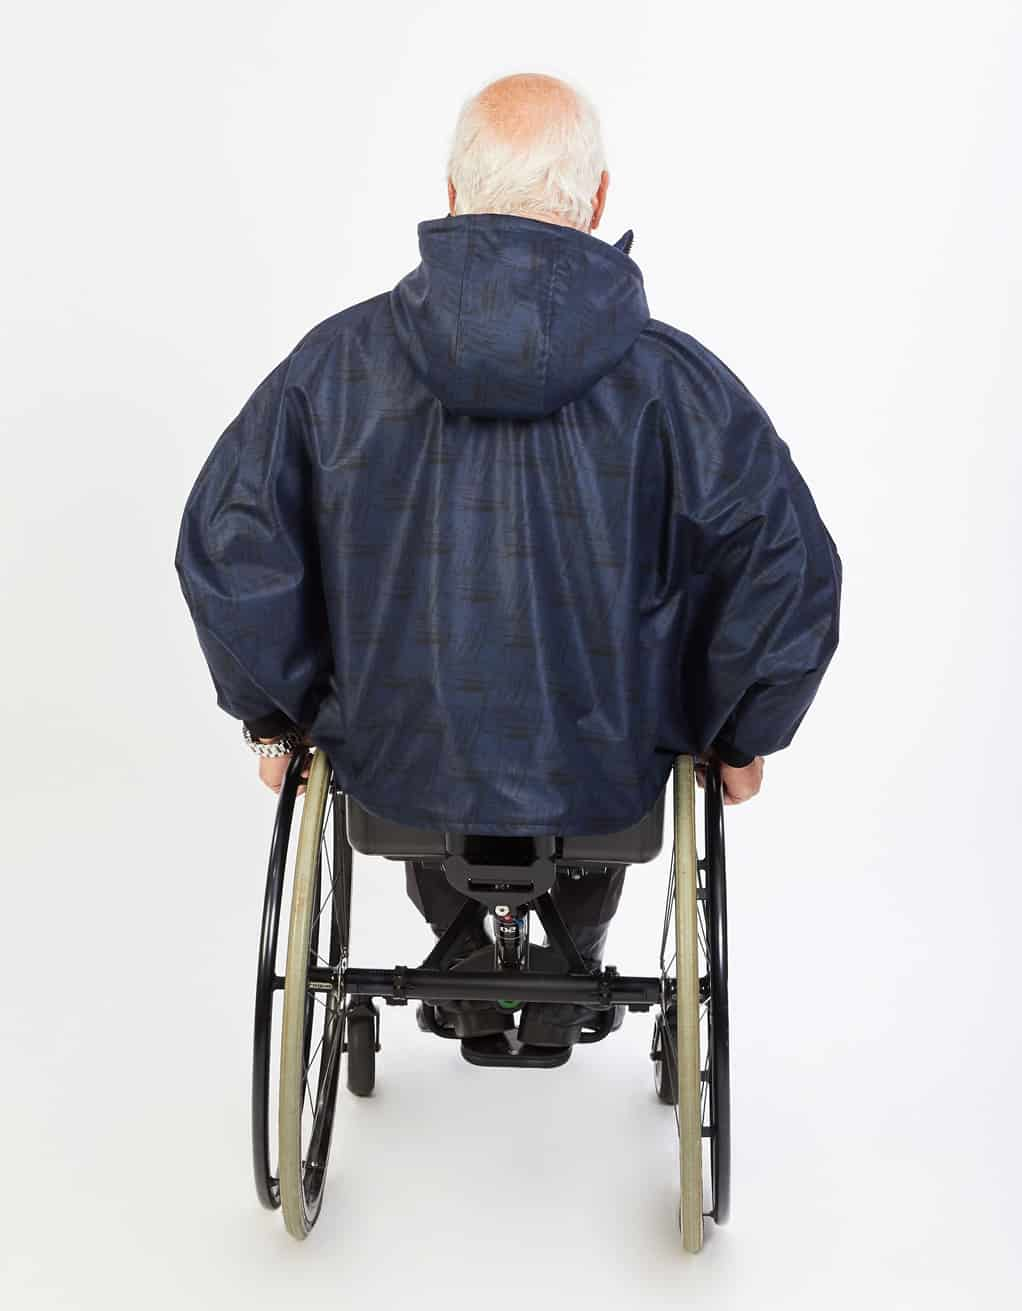 Des Fauteuils Roulant Winter Cape For Wheelchair Easy To Put On Soft Polyester Shell With Sleeves And Detachable Hood Waterproof